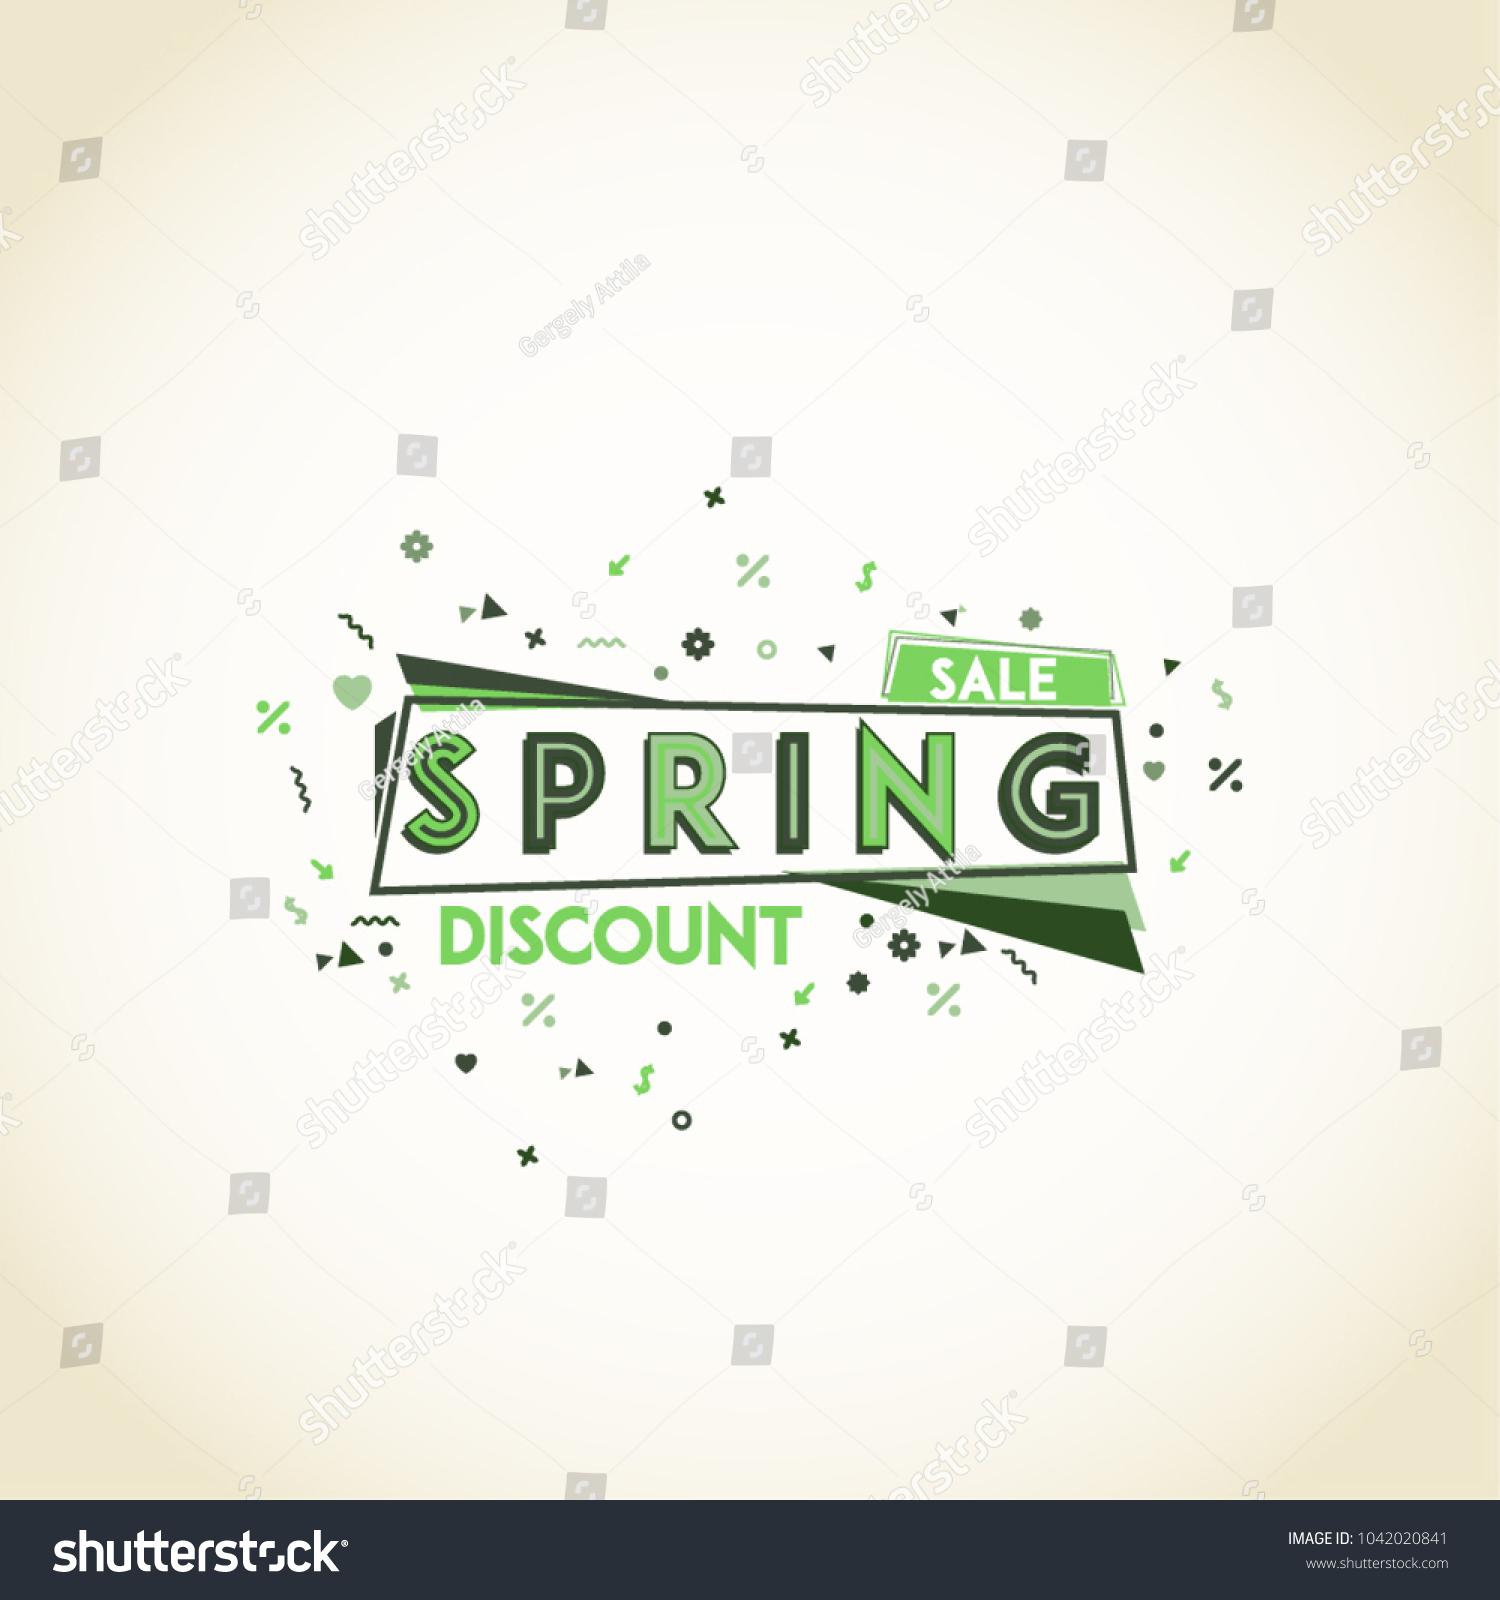 Spring Discount Presentation Typography Design Green Stock Vector ...